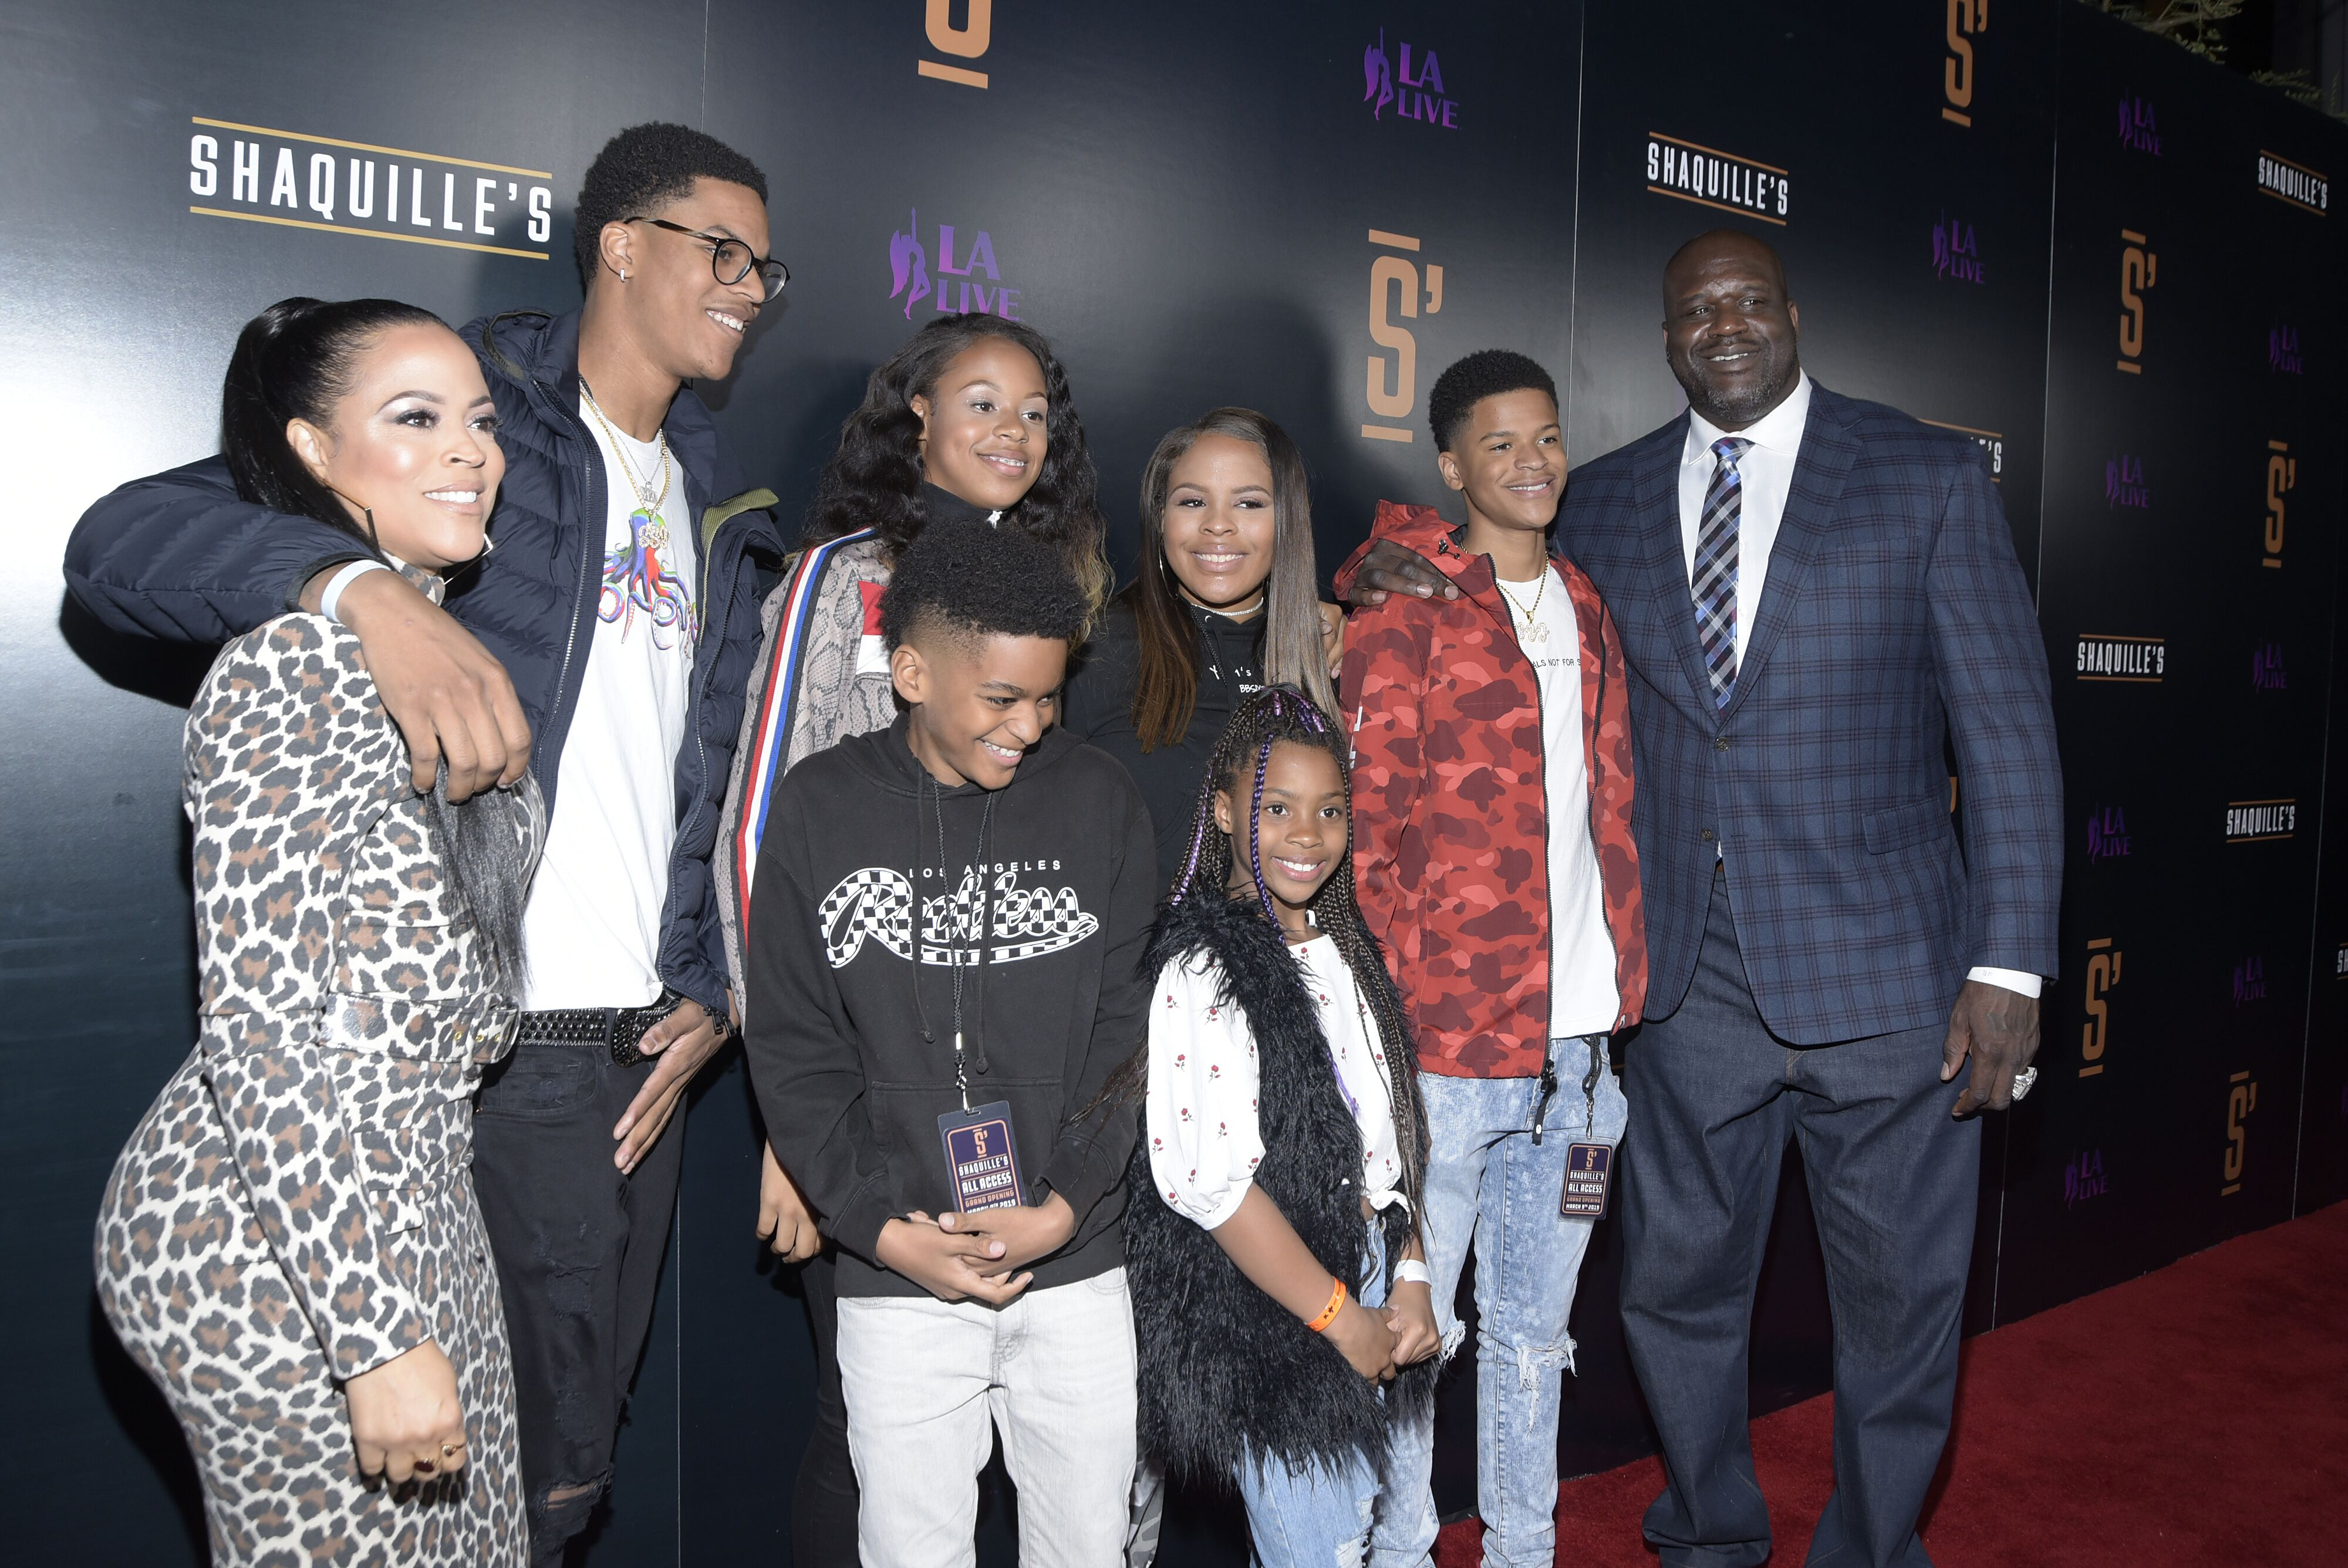 The O'Neals at a red carpet event | Source: Getty Images